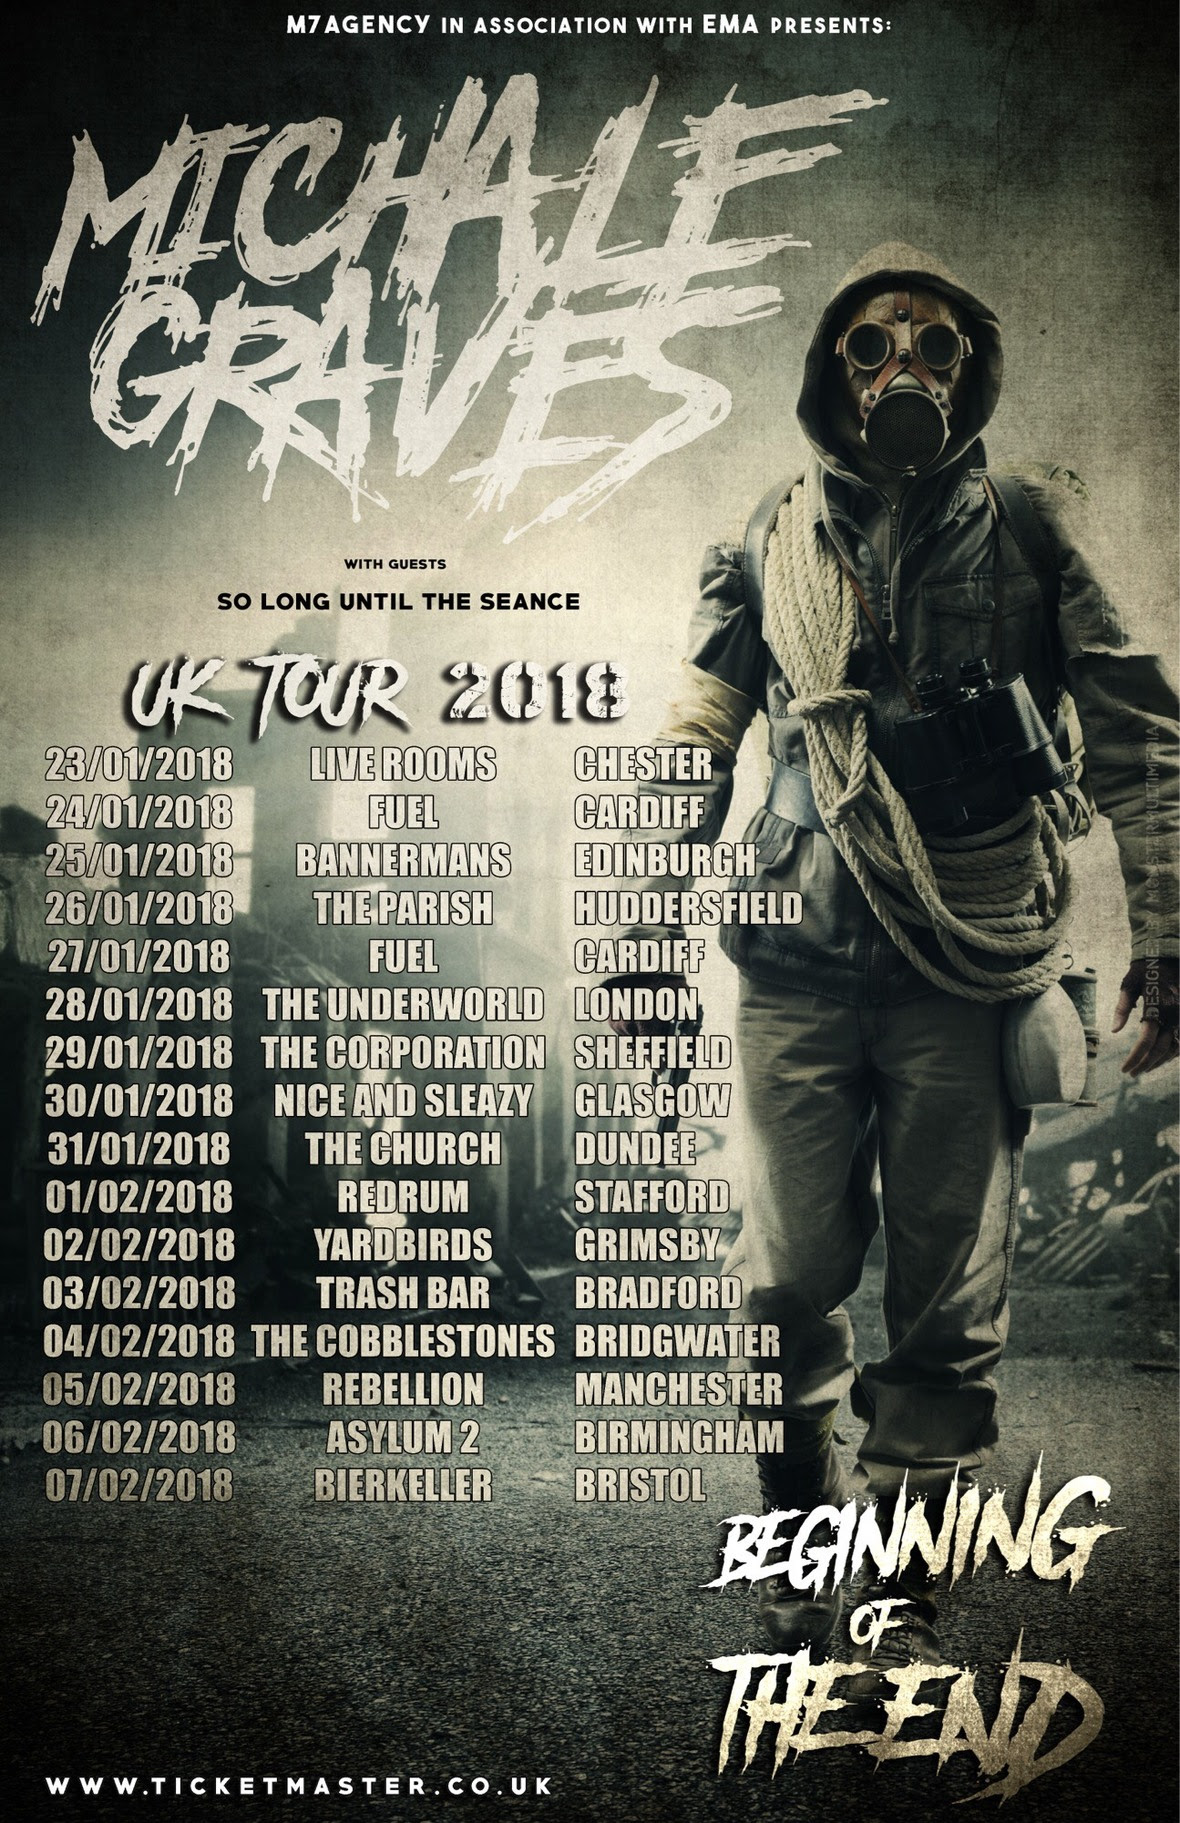 michale graves updated tour poster